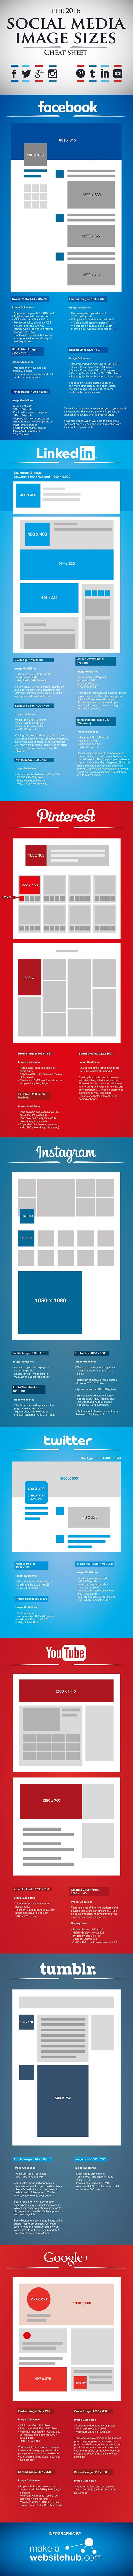 The Ultimate Cheat Sheet of Photo & Image Sizes on Facebook, Twitter, LinkedIn & Other Social Networks [Infographic] https://blog.hubspot.com/marketing/ultimate-guide-social-media-image-dimensions-infographic#sm.000011l2eoeshoelnrvw8w3gb4v1v